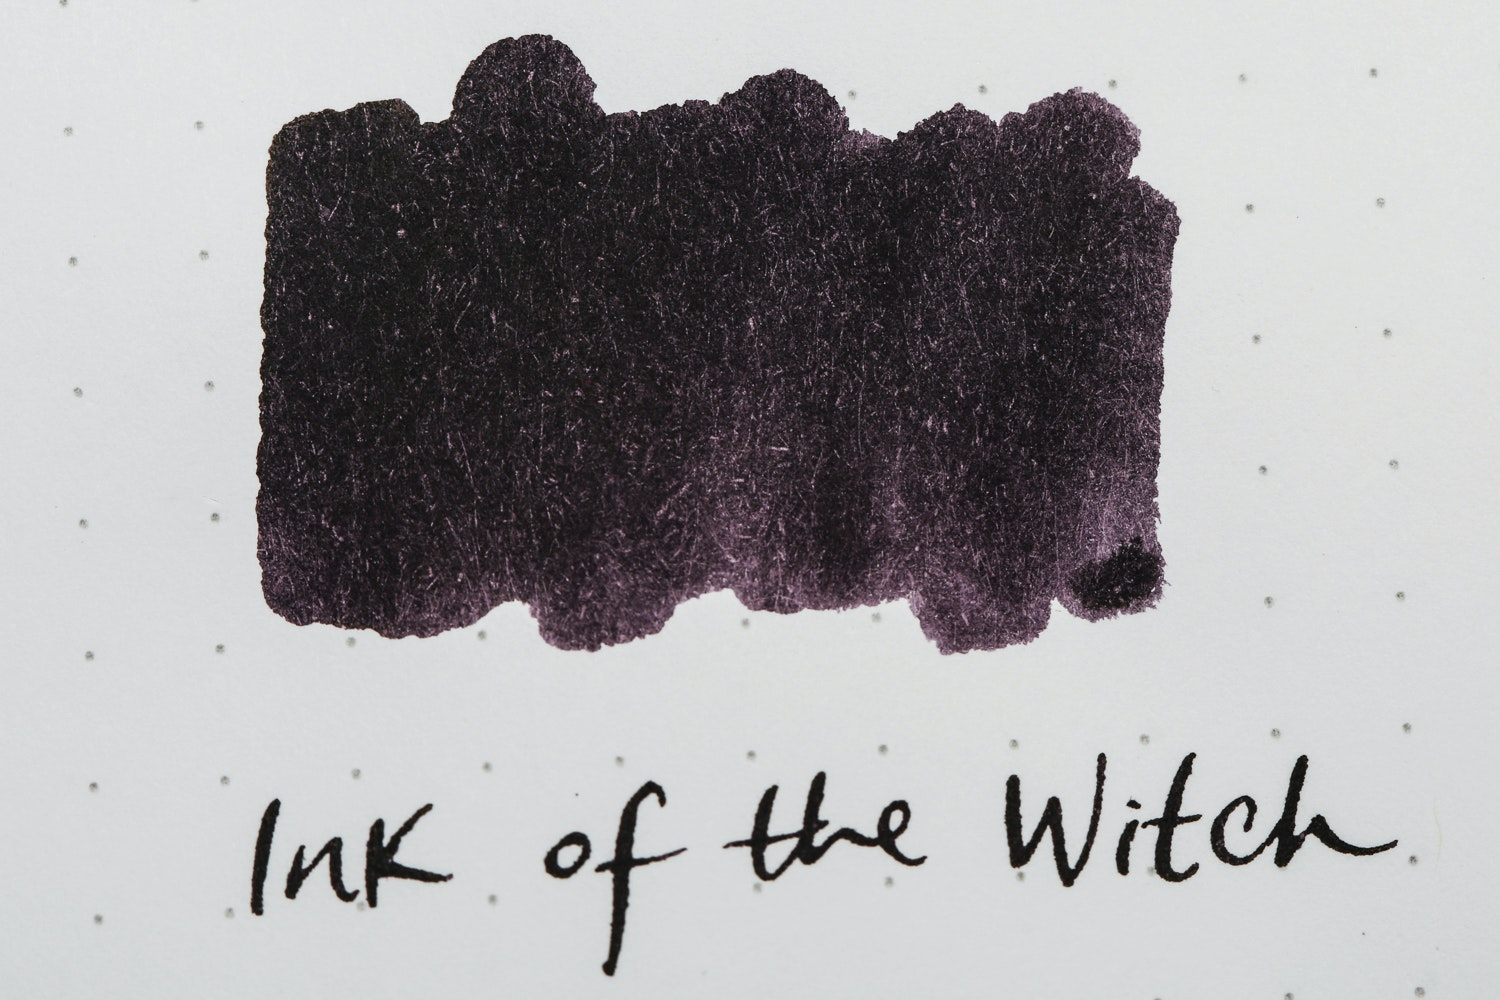 Ink of Witch (Deep Purple)